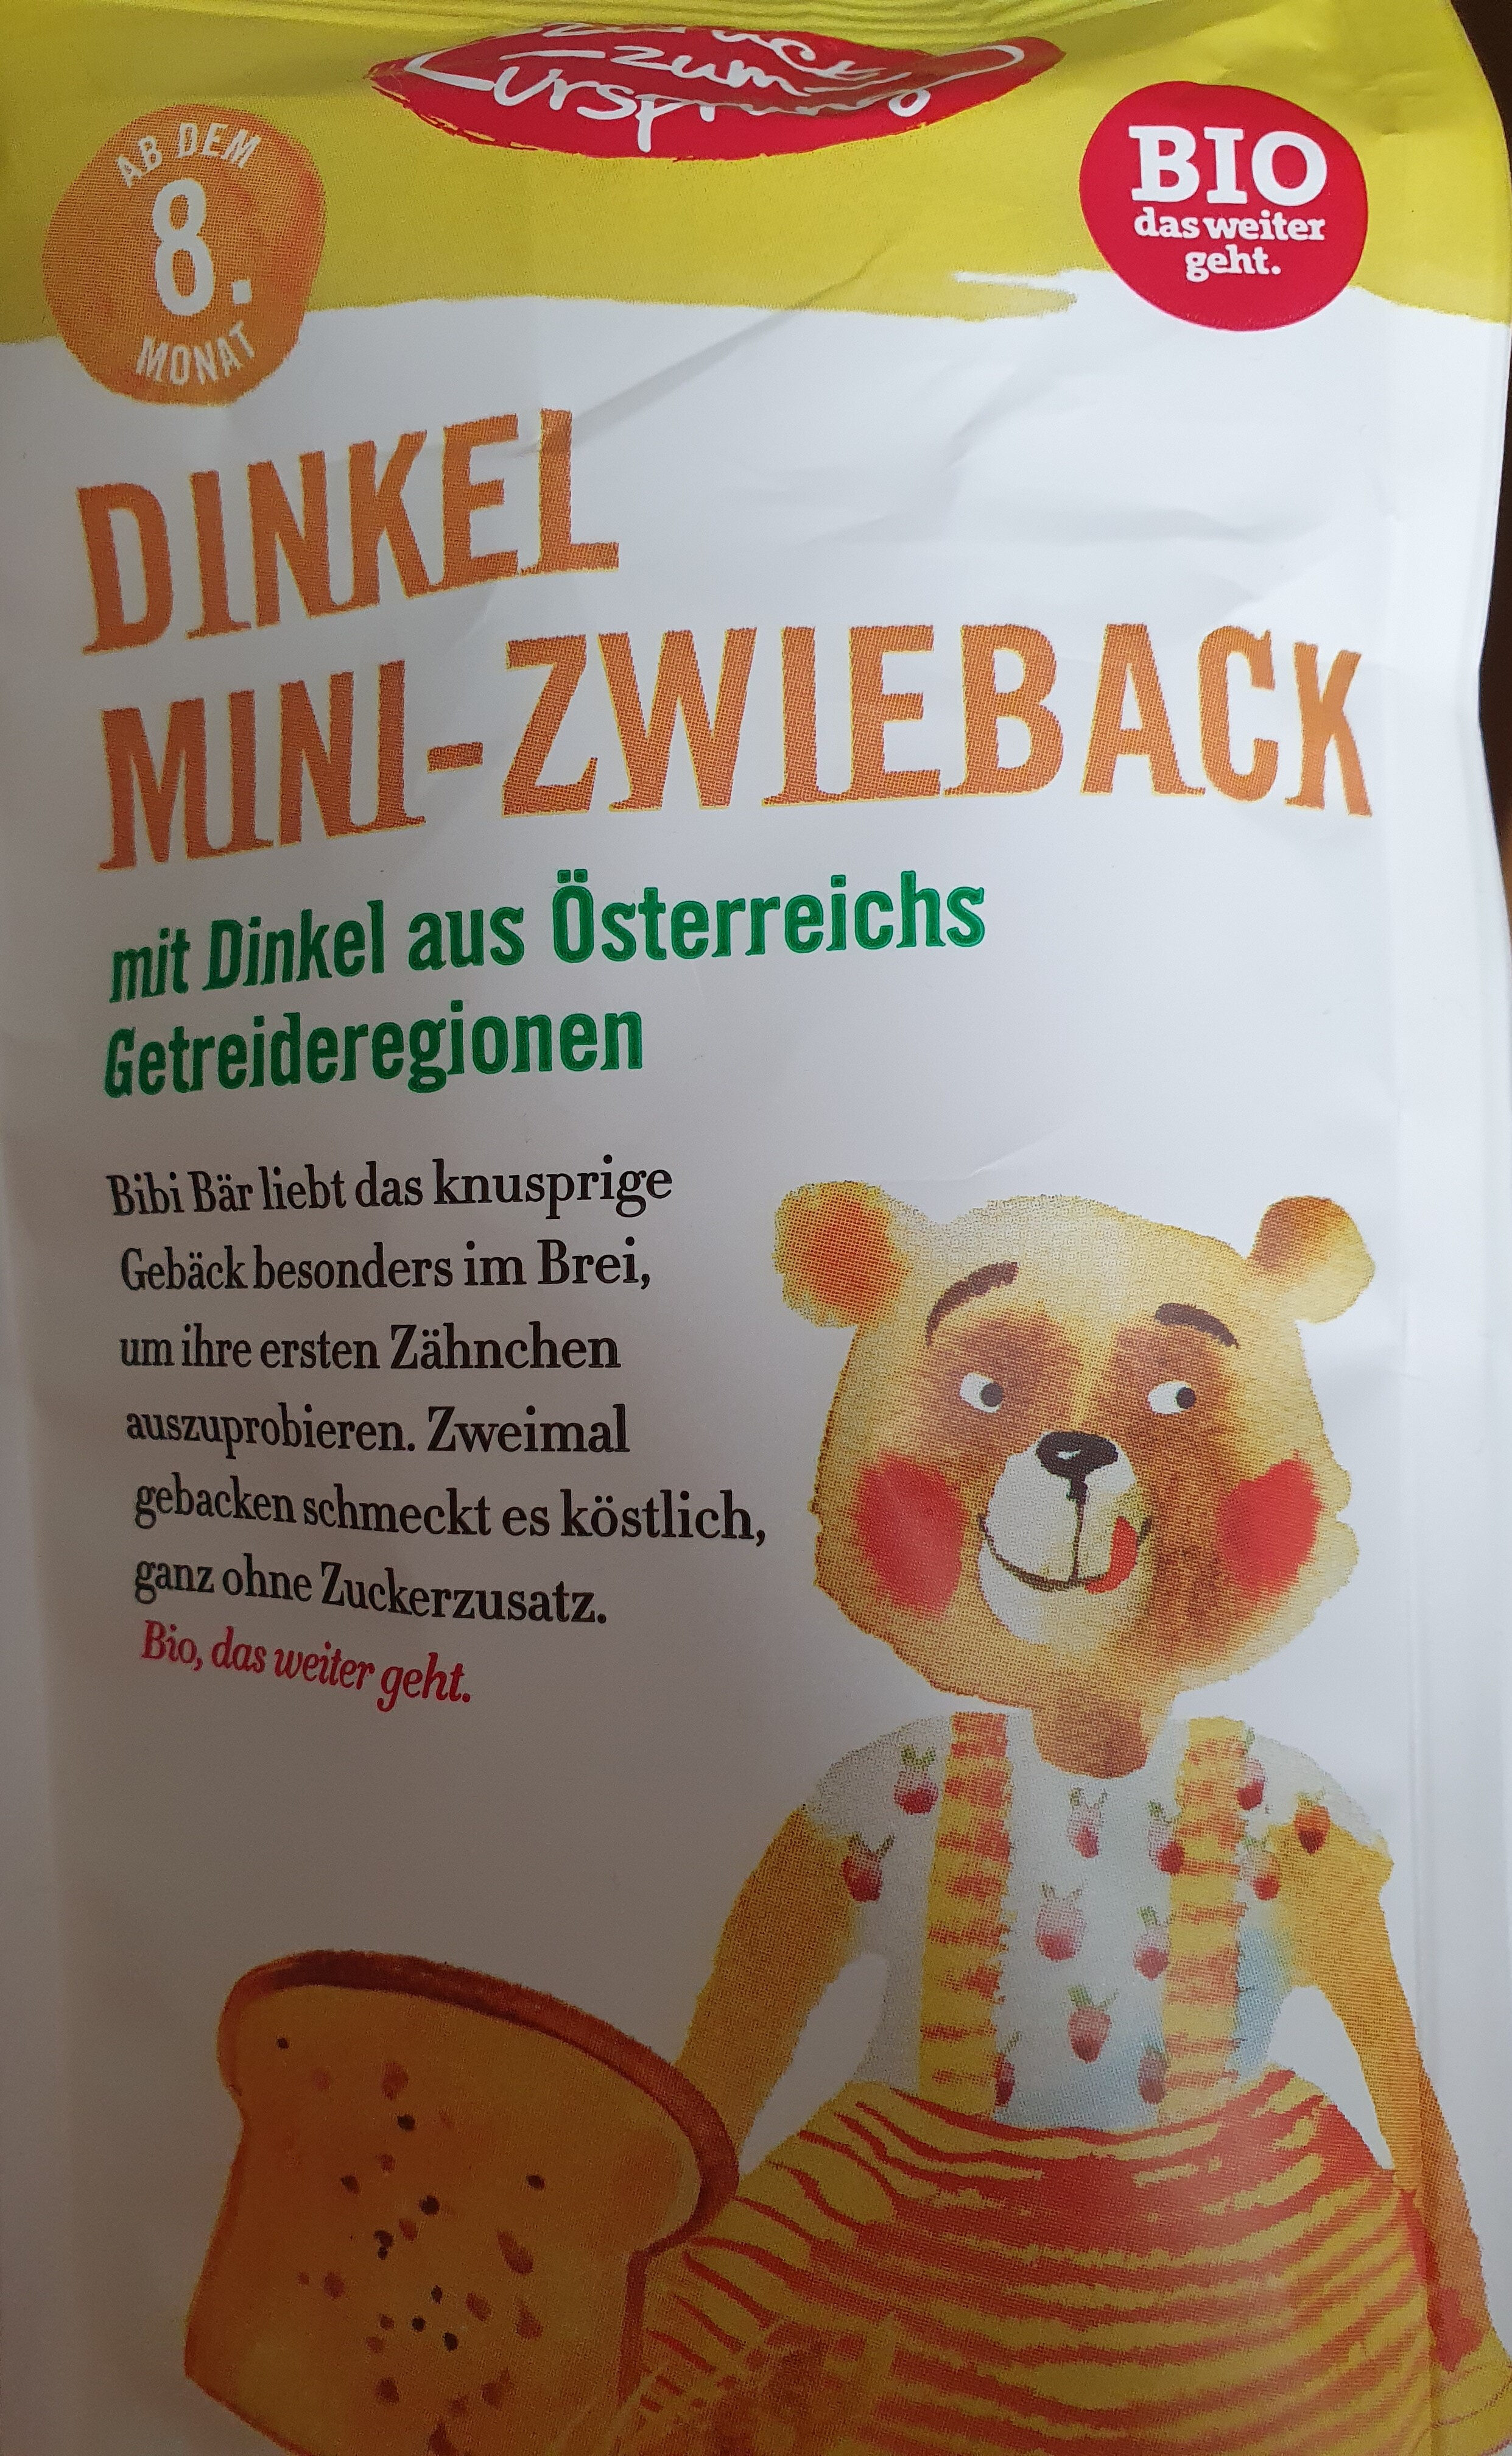 dinkel mini-zwieback - Product - de